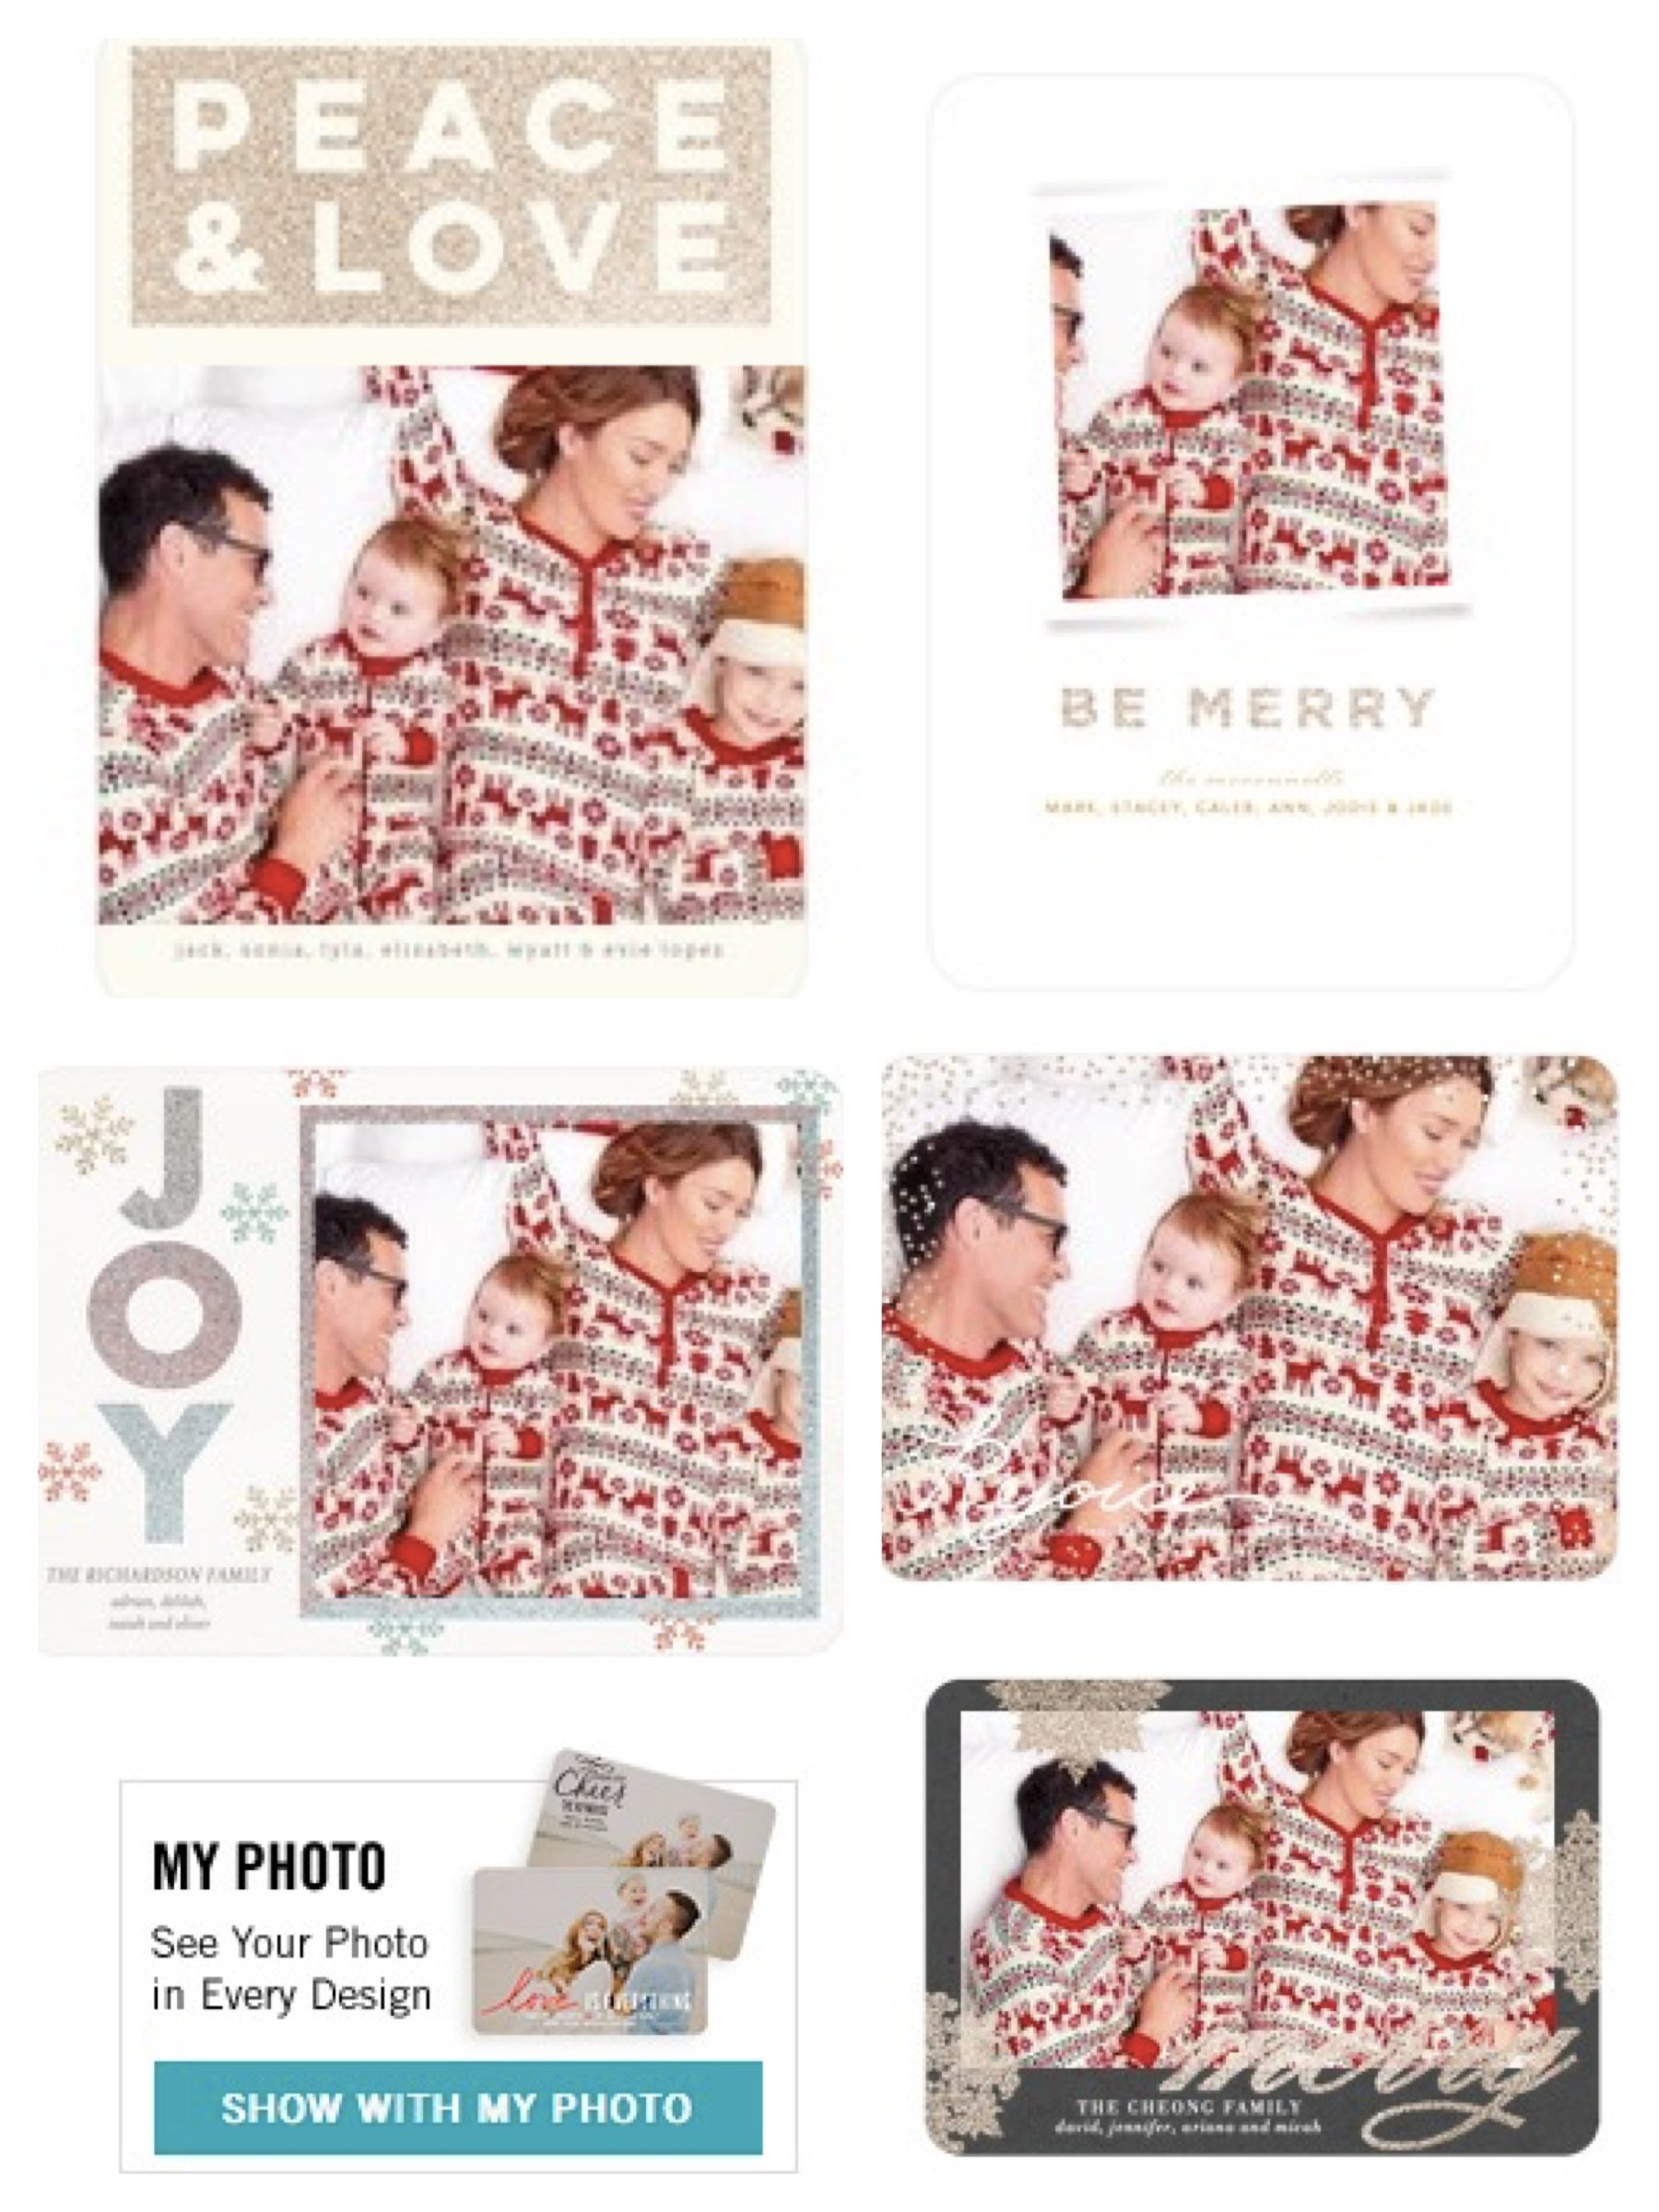 Dear Deer Matching Family Pajamas Shown in Tiny Prints Premium Glitter Holiday Cards